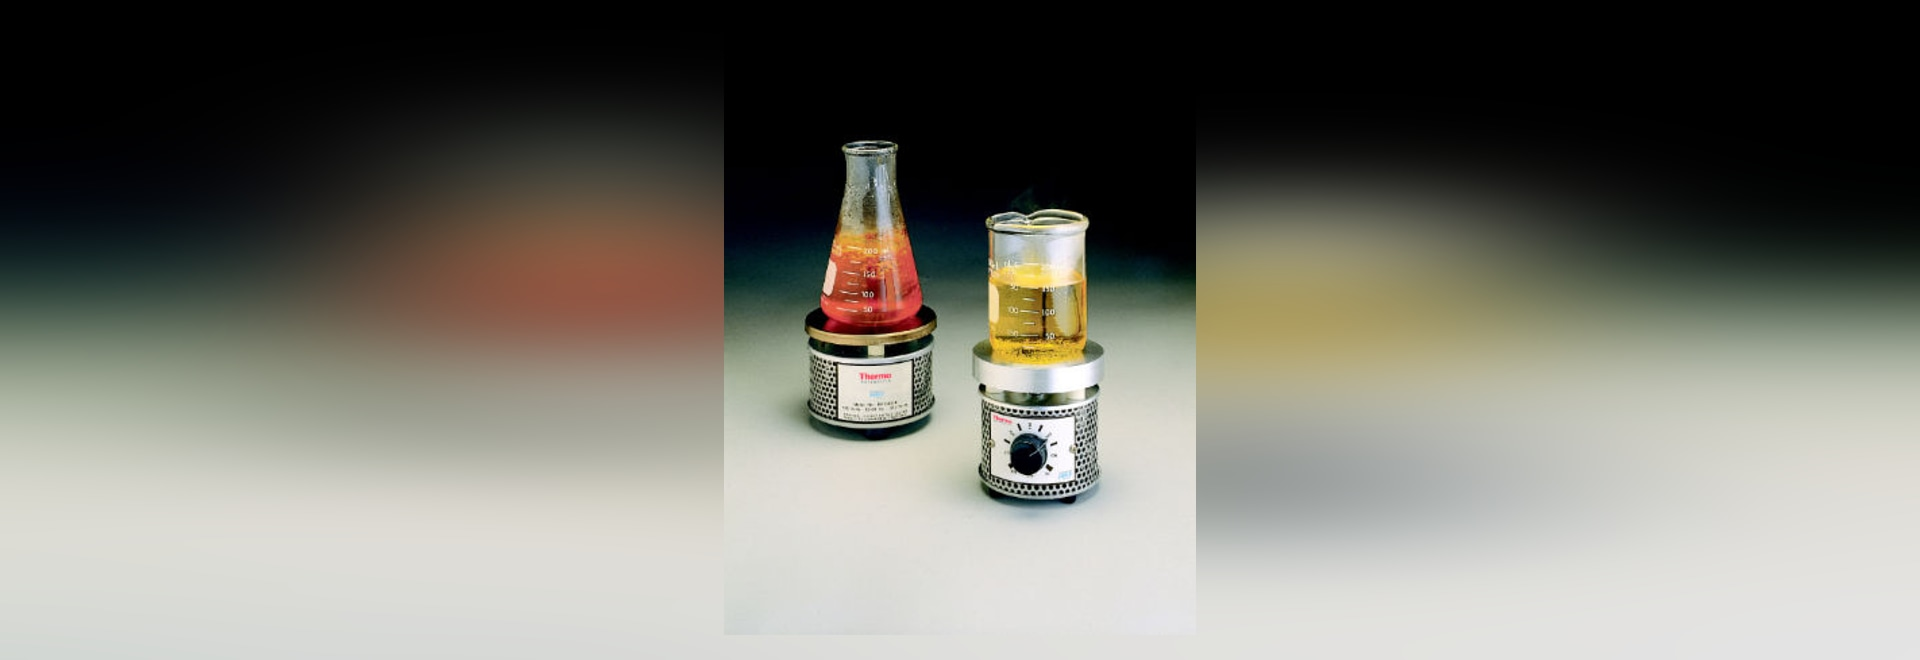 NEW: laboratory hot plate by Thermo Scientific - Laboratory Equipment